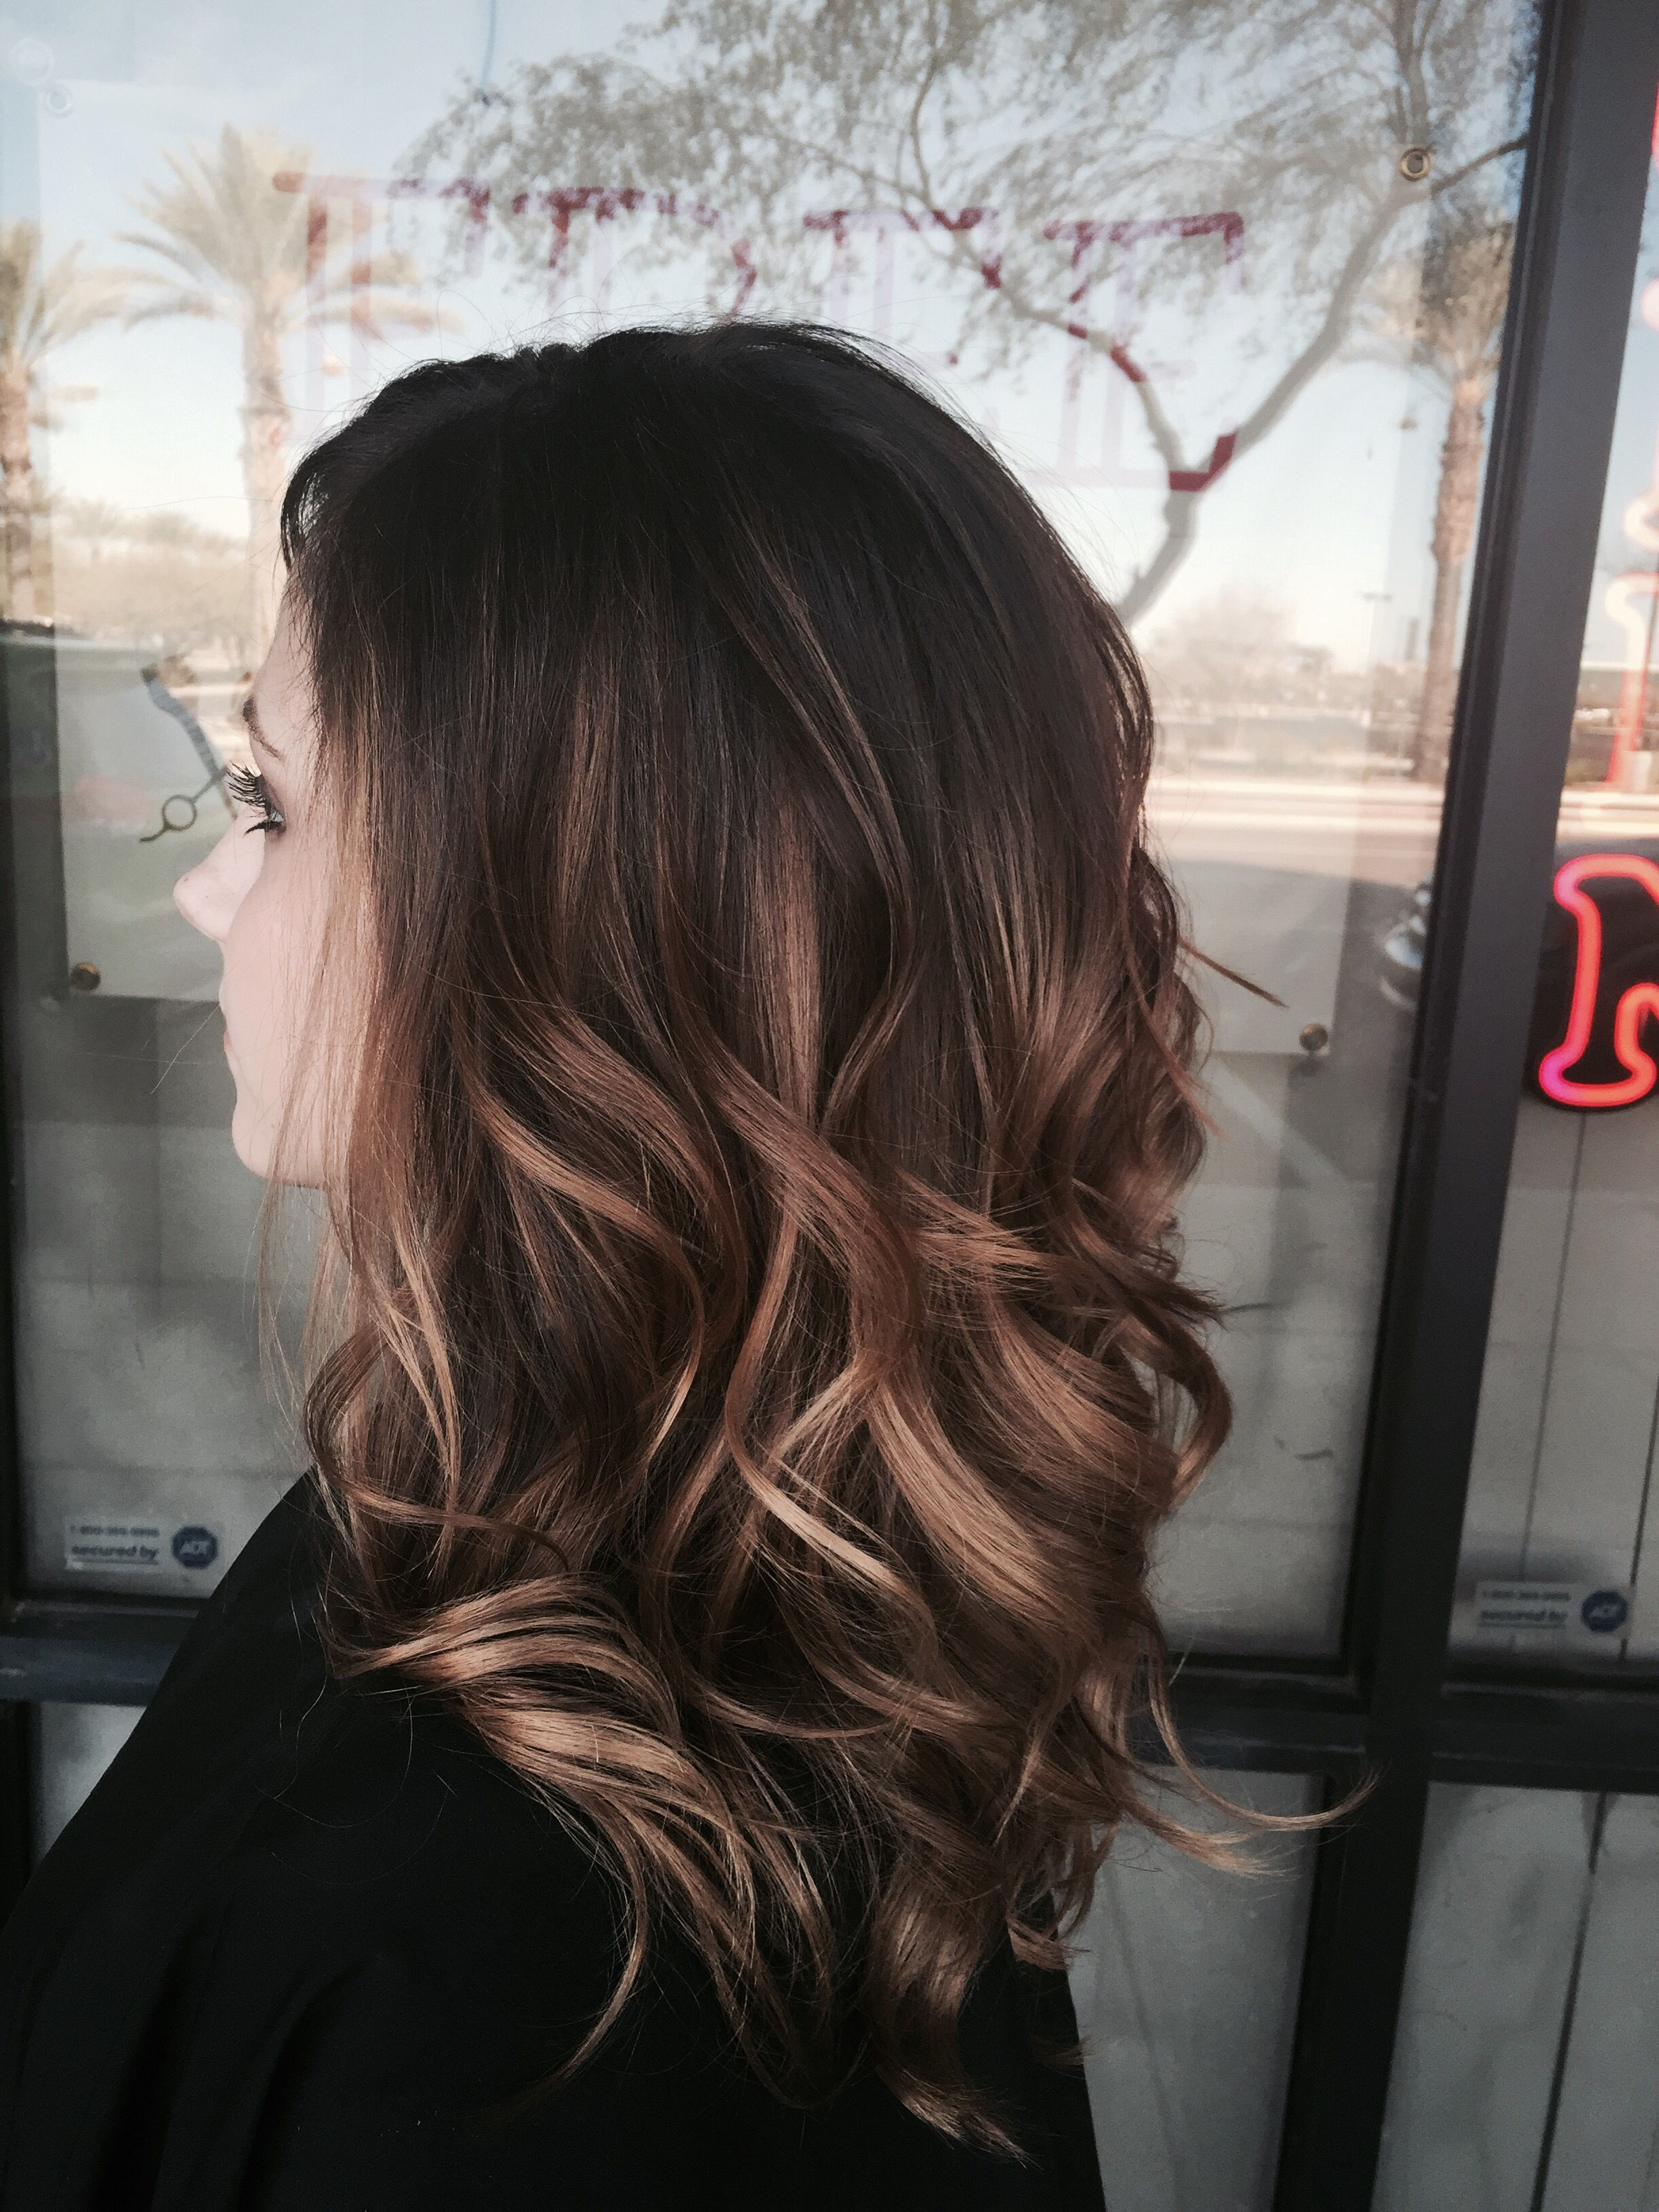 Balayage Hairstyle On Long Hair Medium Brown With Blonde Balayage Hair Styles Medium Hair Styles Long Hair Styles